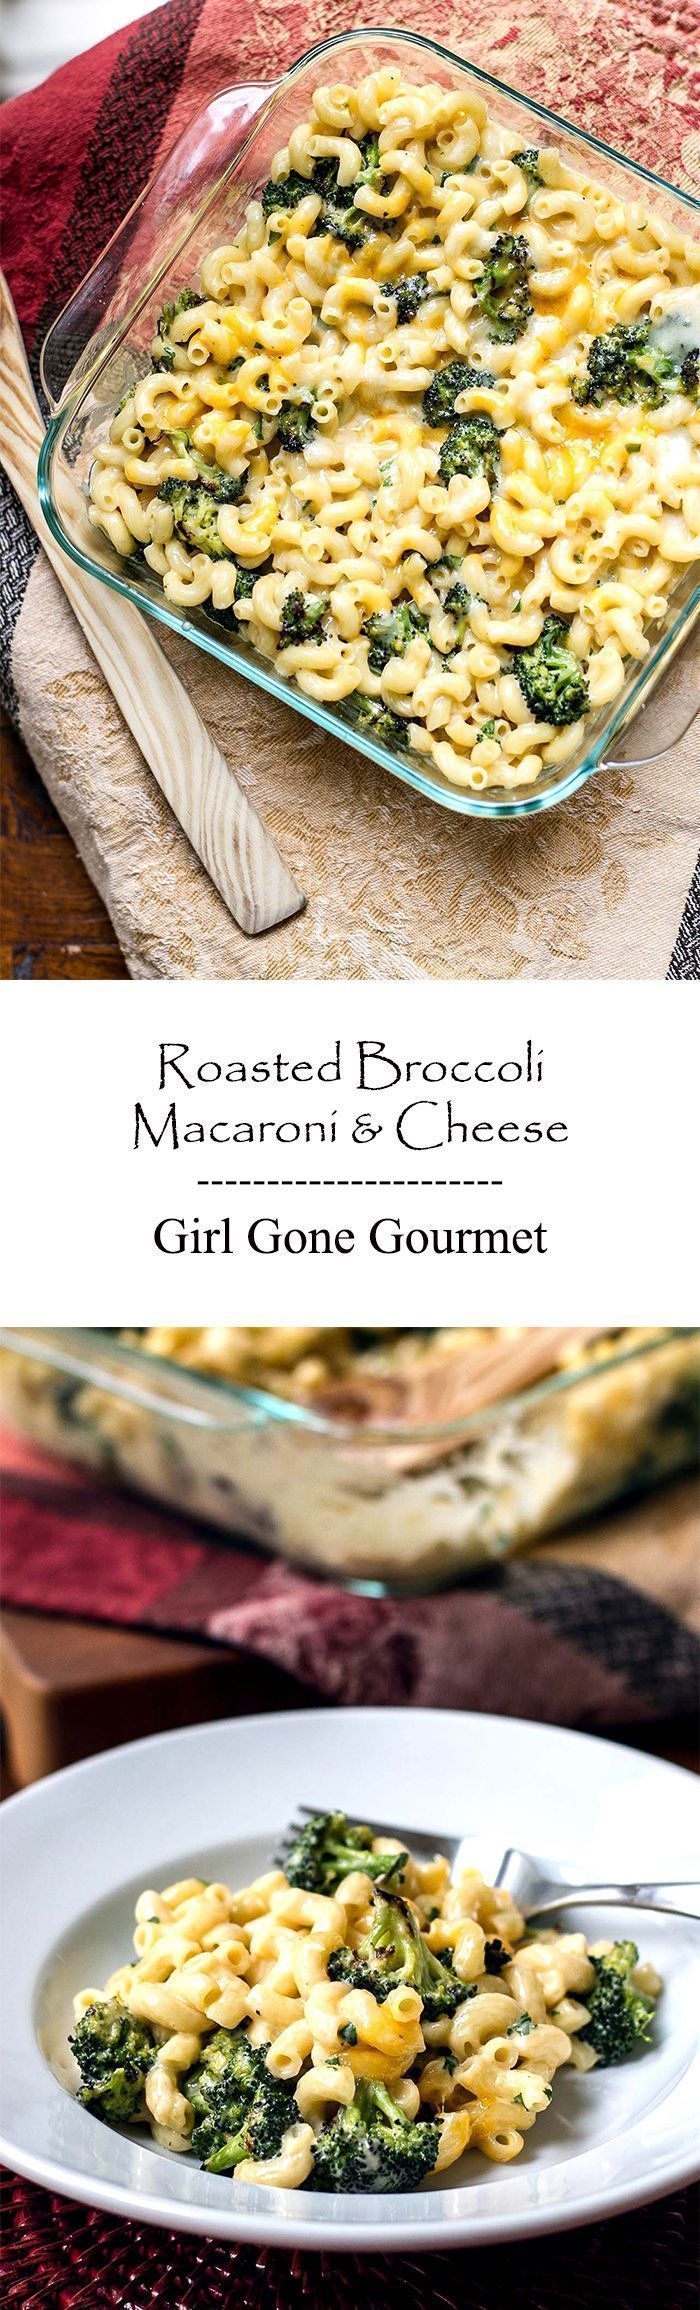 Rich and creamy mac & cheese with tender roasted broccoli | girlgonegourmet.com